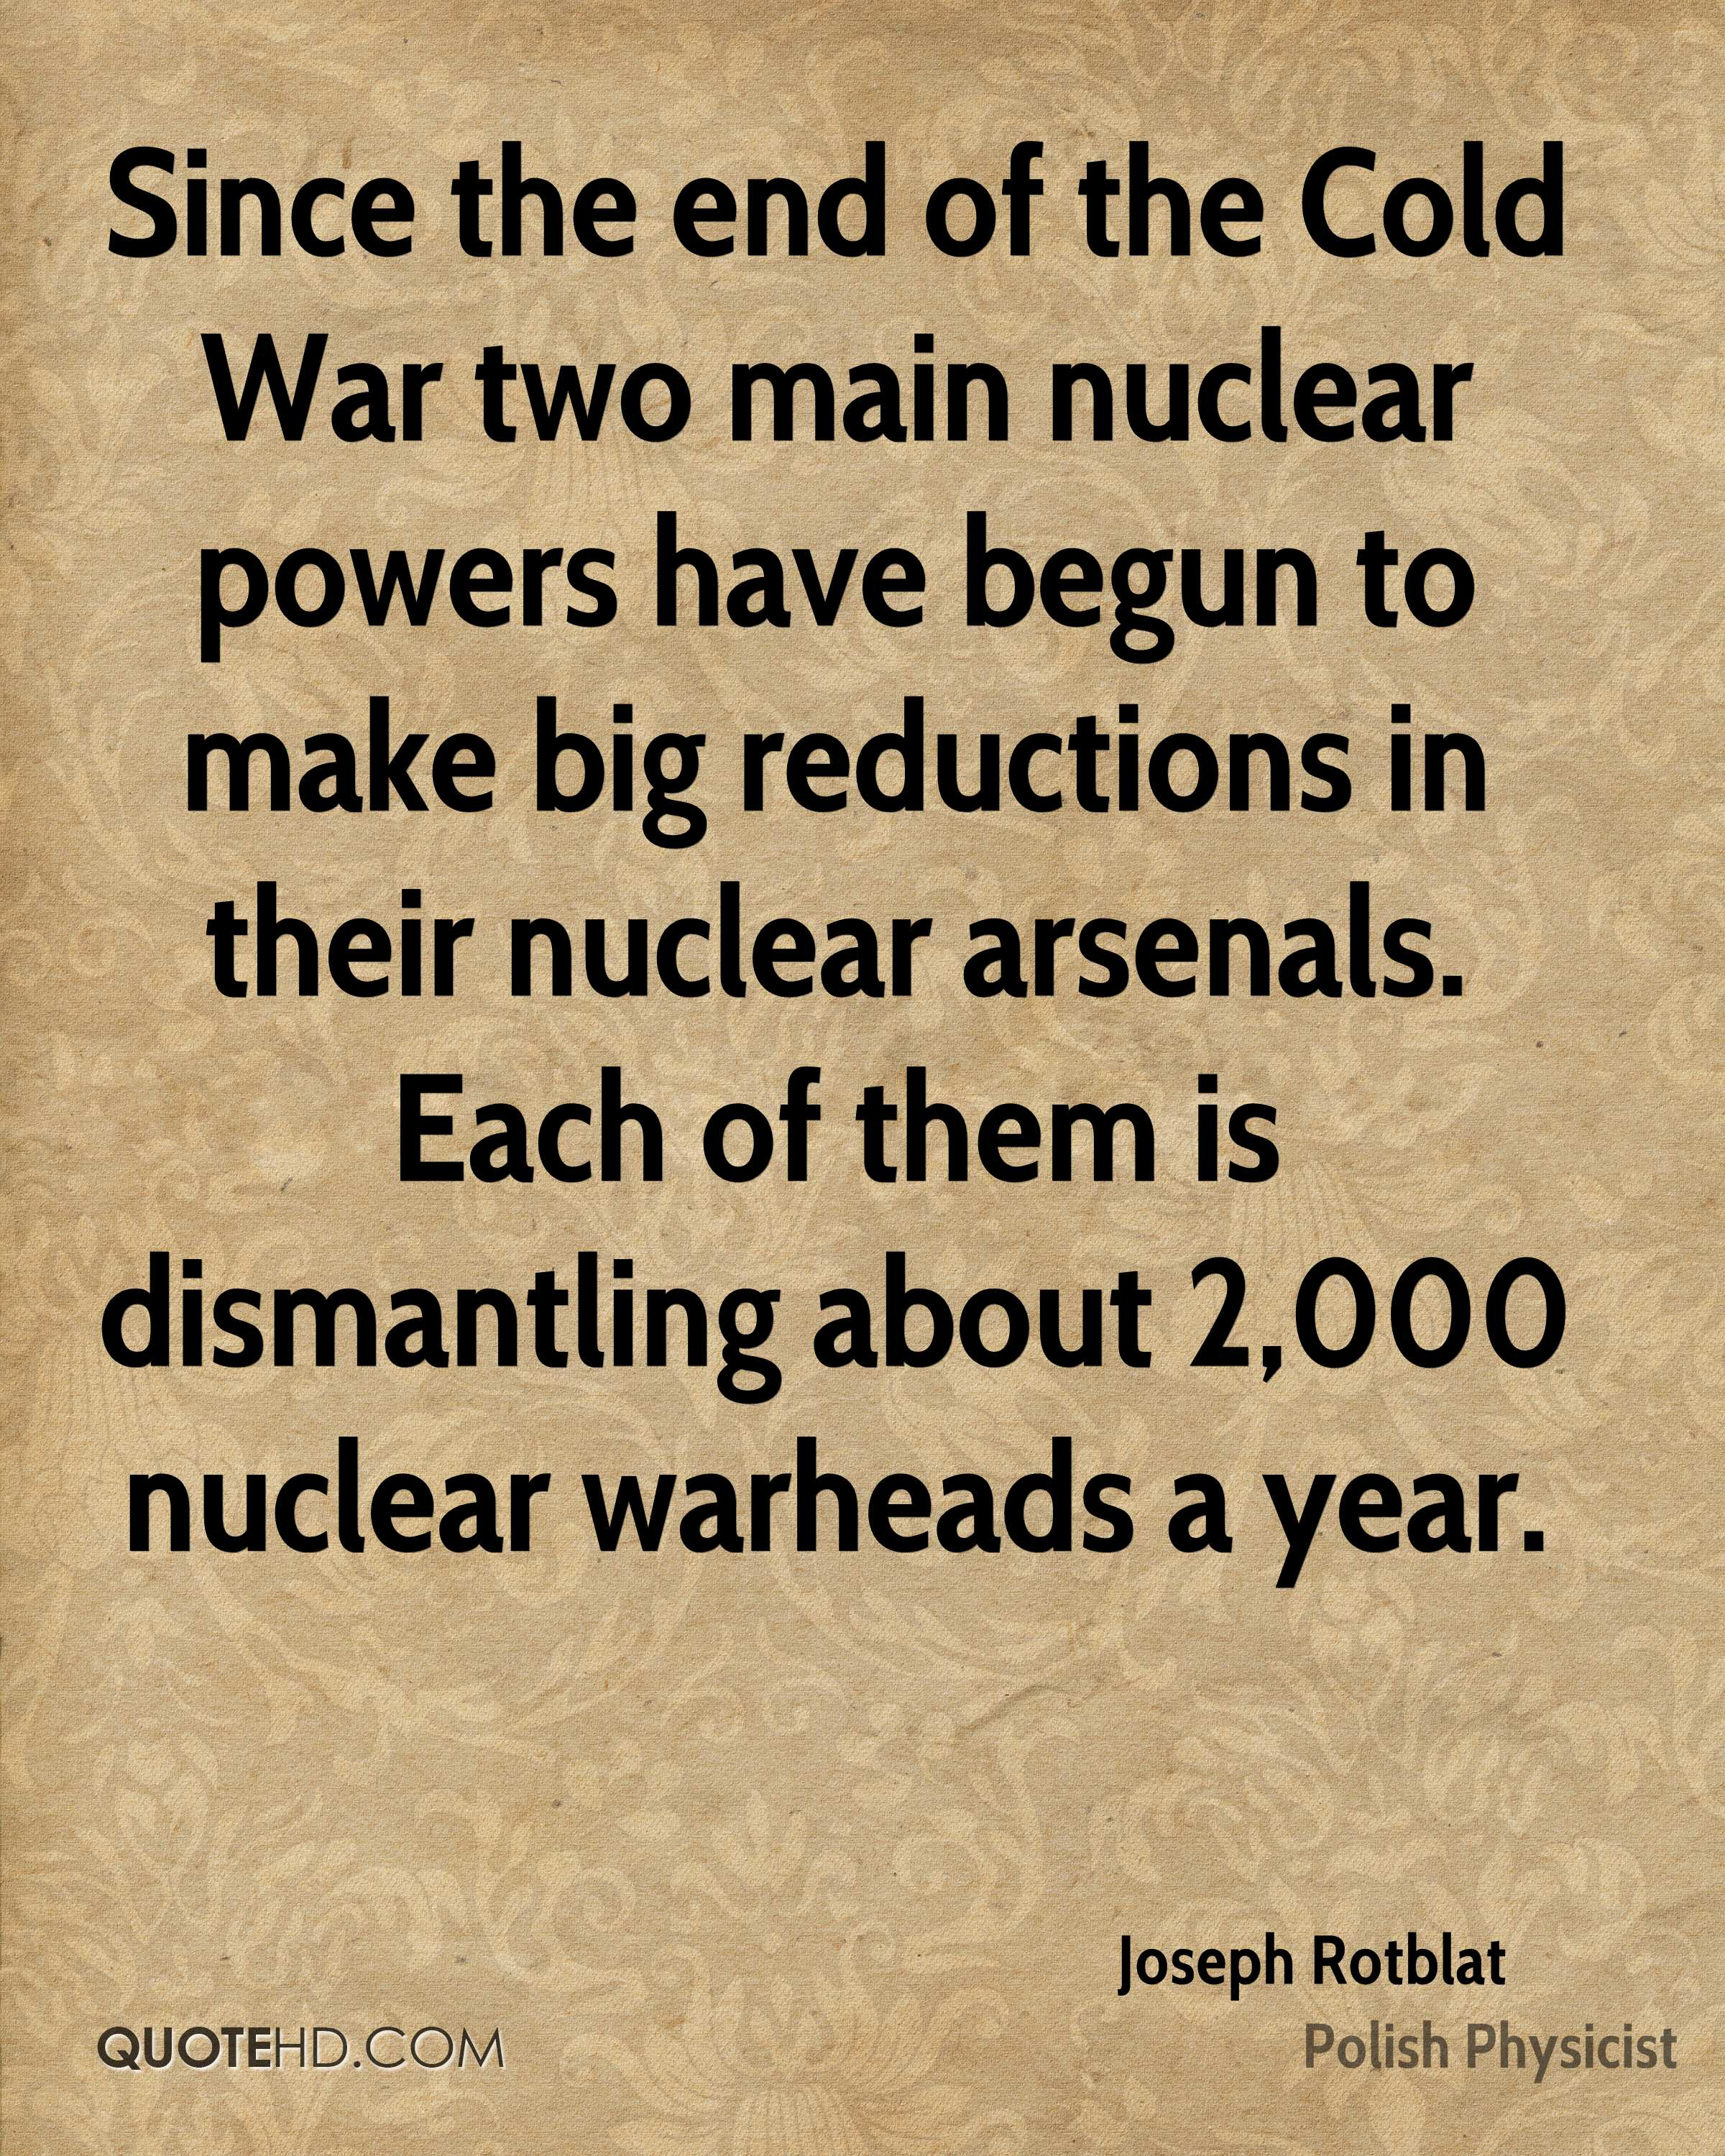 Since the end of the Cold War two main nuclear powers have begun to make big reductions in their nuclear arsenals. Each of them is dismantling about 2,000 nuclear warheads a year.